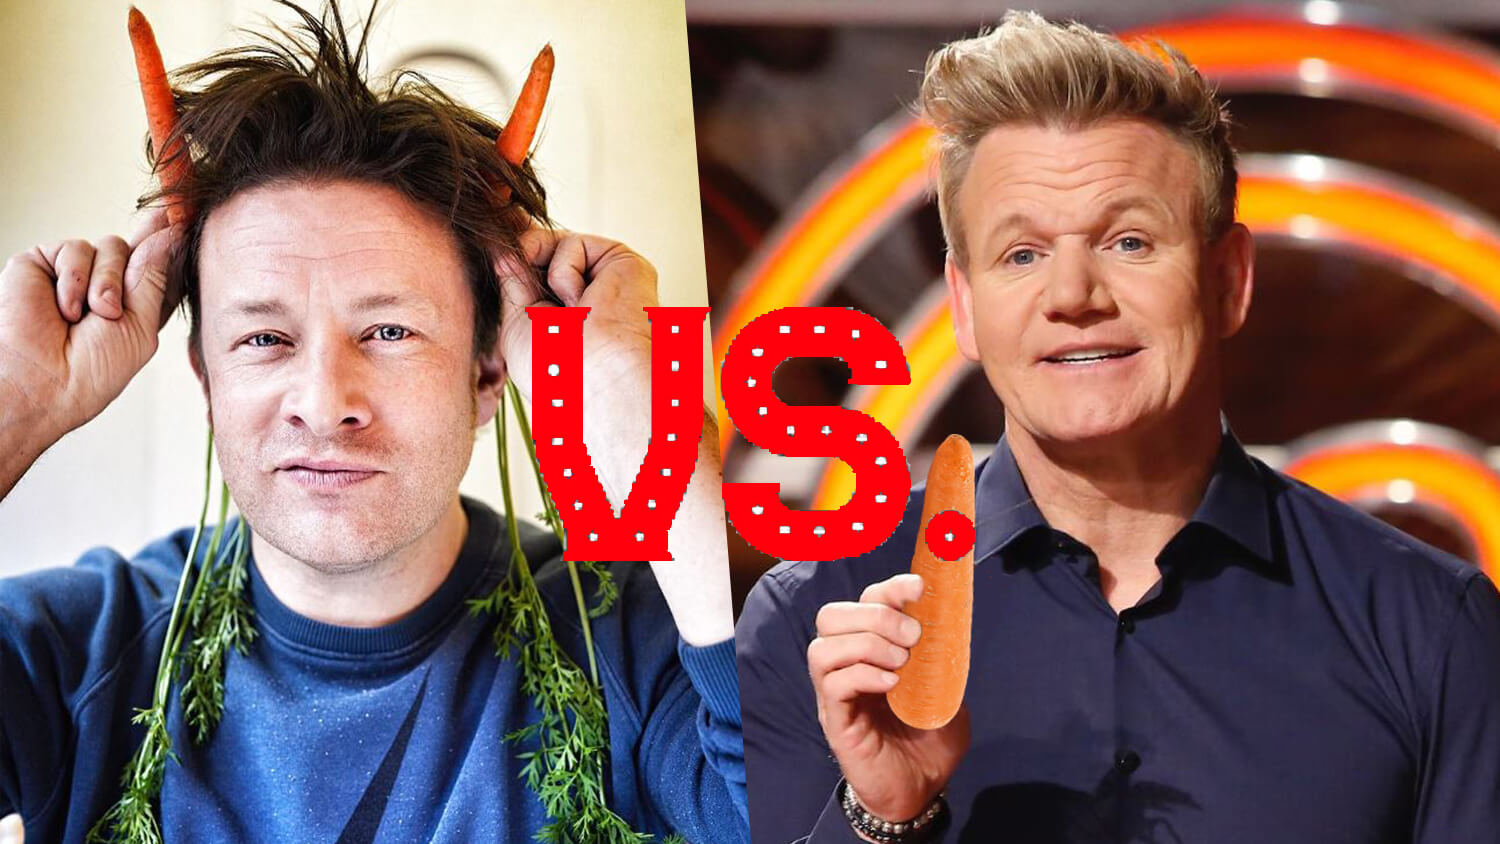 Chefs Jamie Oliver and Gordon Ramsay in a Race to Launch the Most Vegan Recipes in January